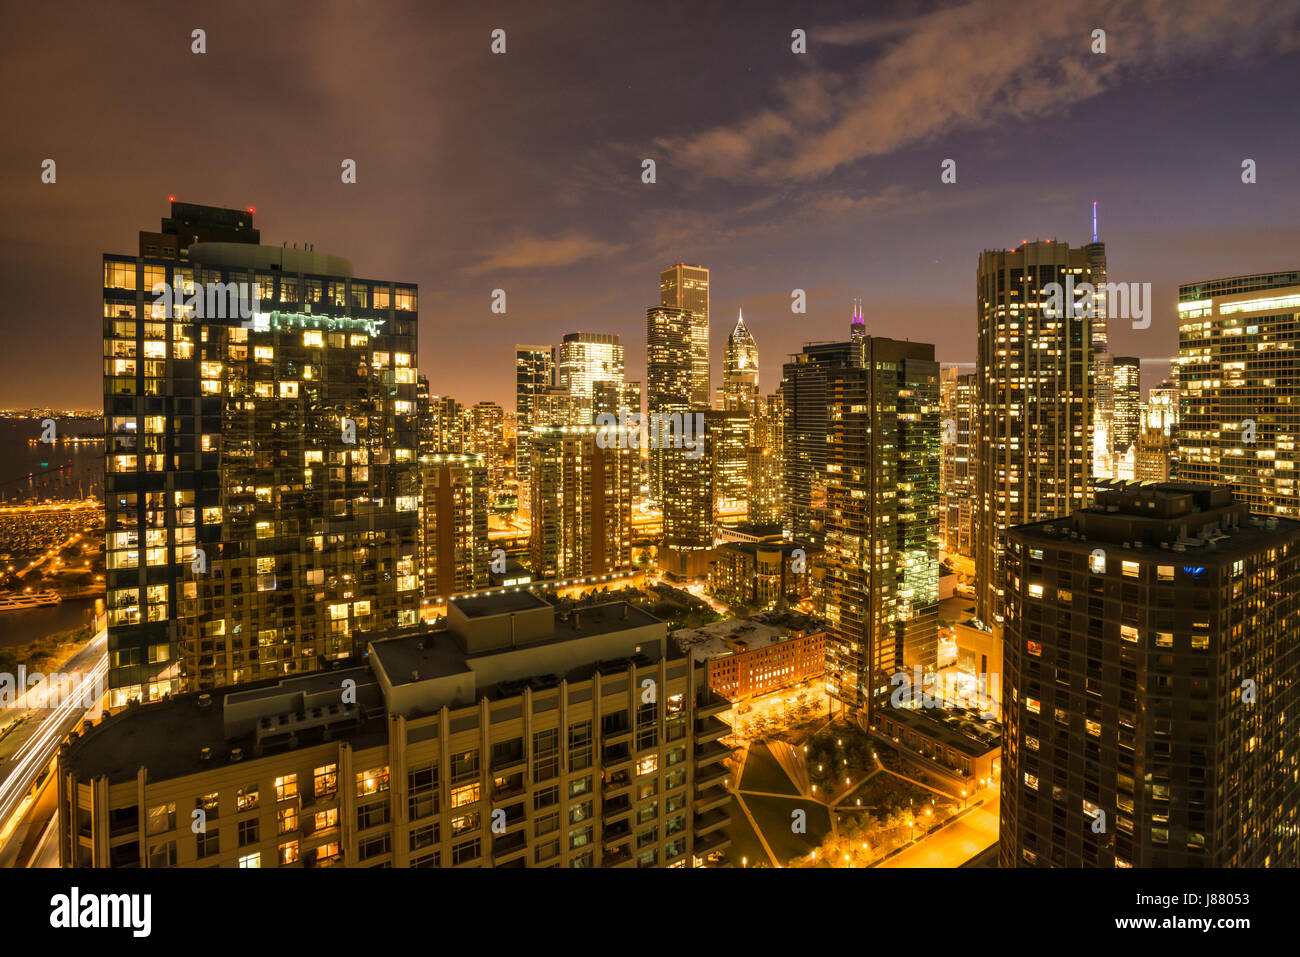 Night scenic of Chicago buildings from Lakeshore view USA - Stock Image